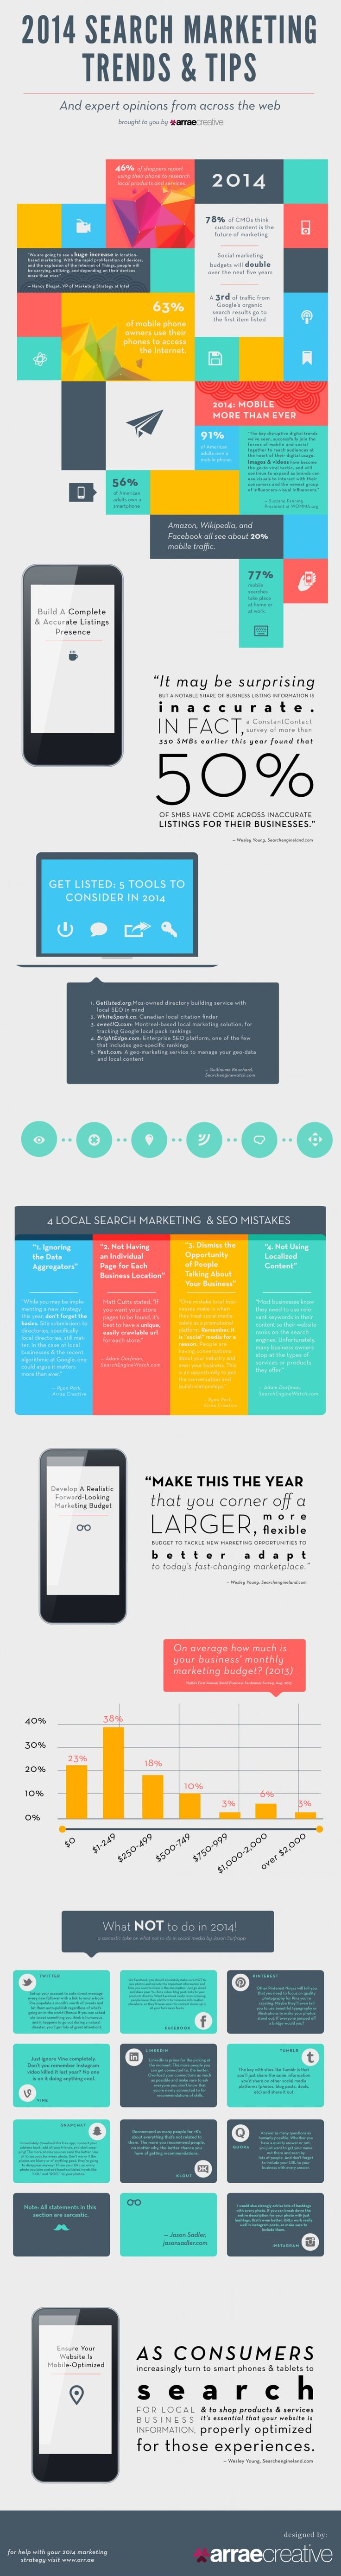 2014 Search #Marketing Trends & Tips: Search Marketing, Online Marketing, Digital Marketing, Marketing Trends, 2014 Online, Search Engine